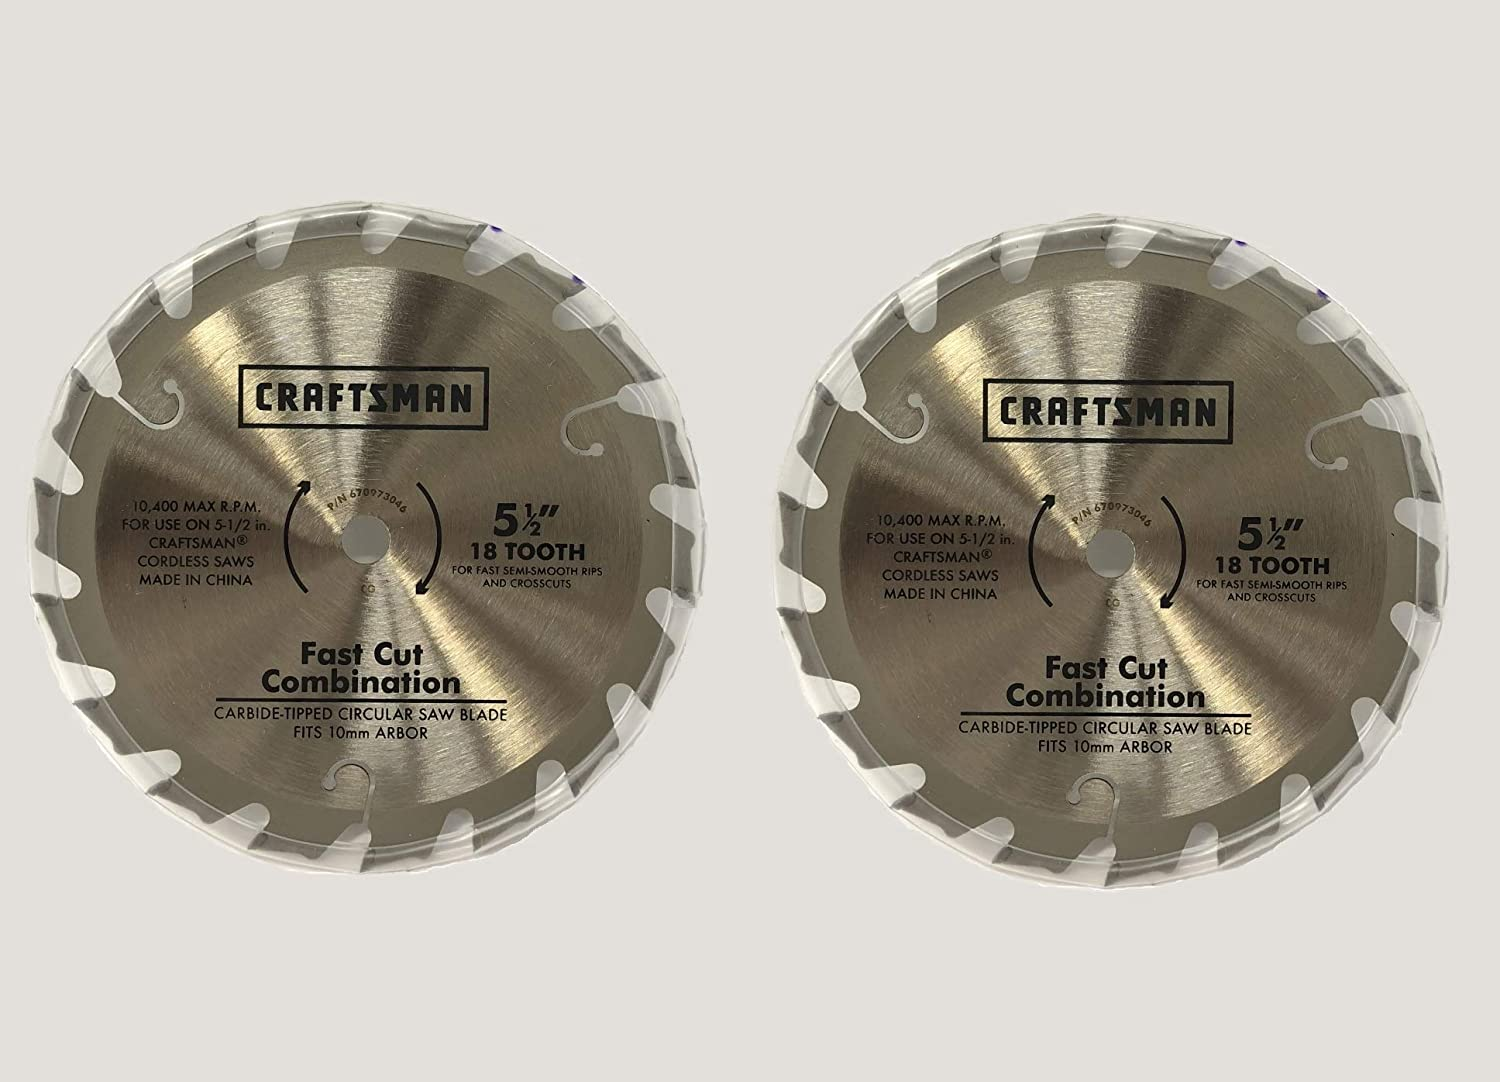 Craftsman Circular Saw Blade 5.5-in Bulk Recommendation 670973046 N Packaged Fresno Mall